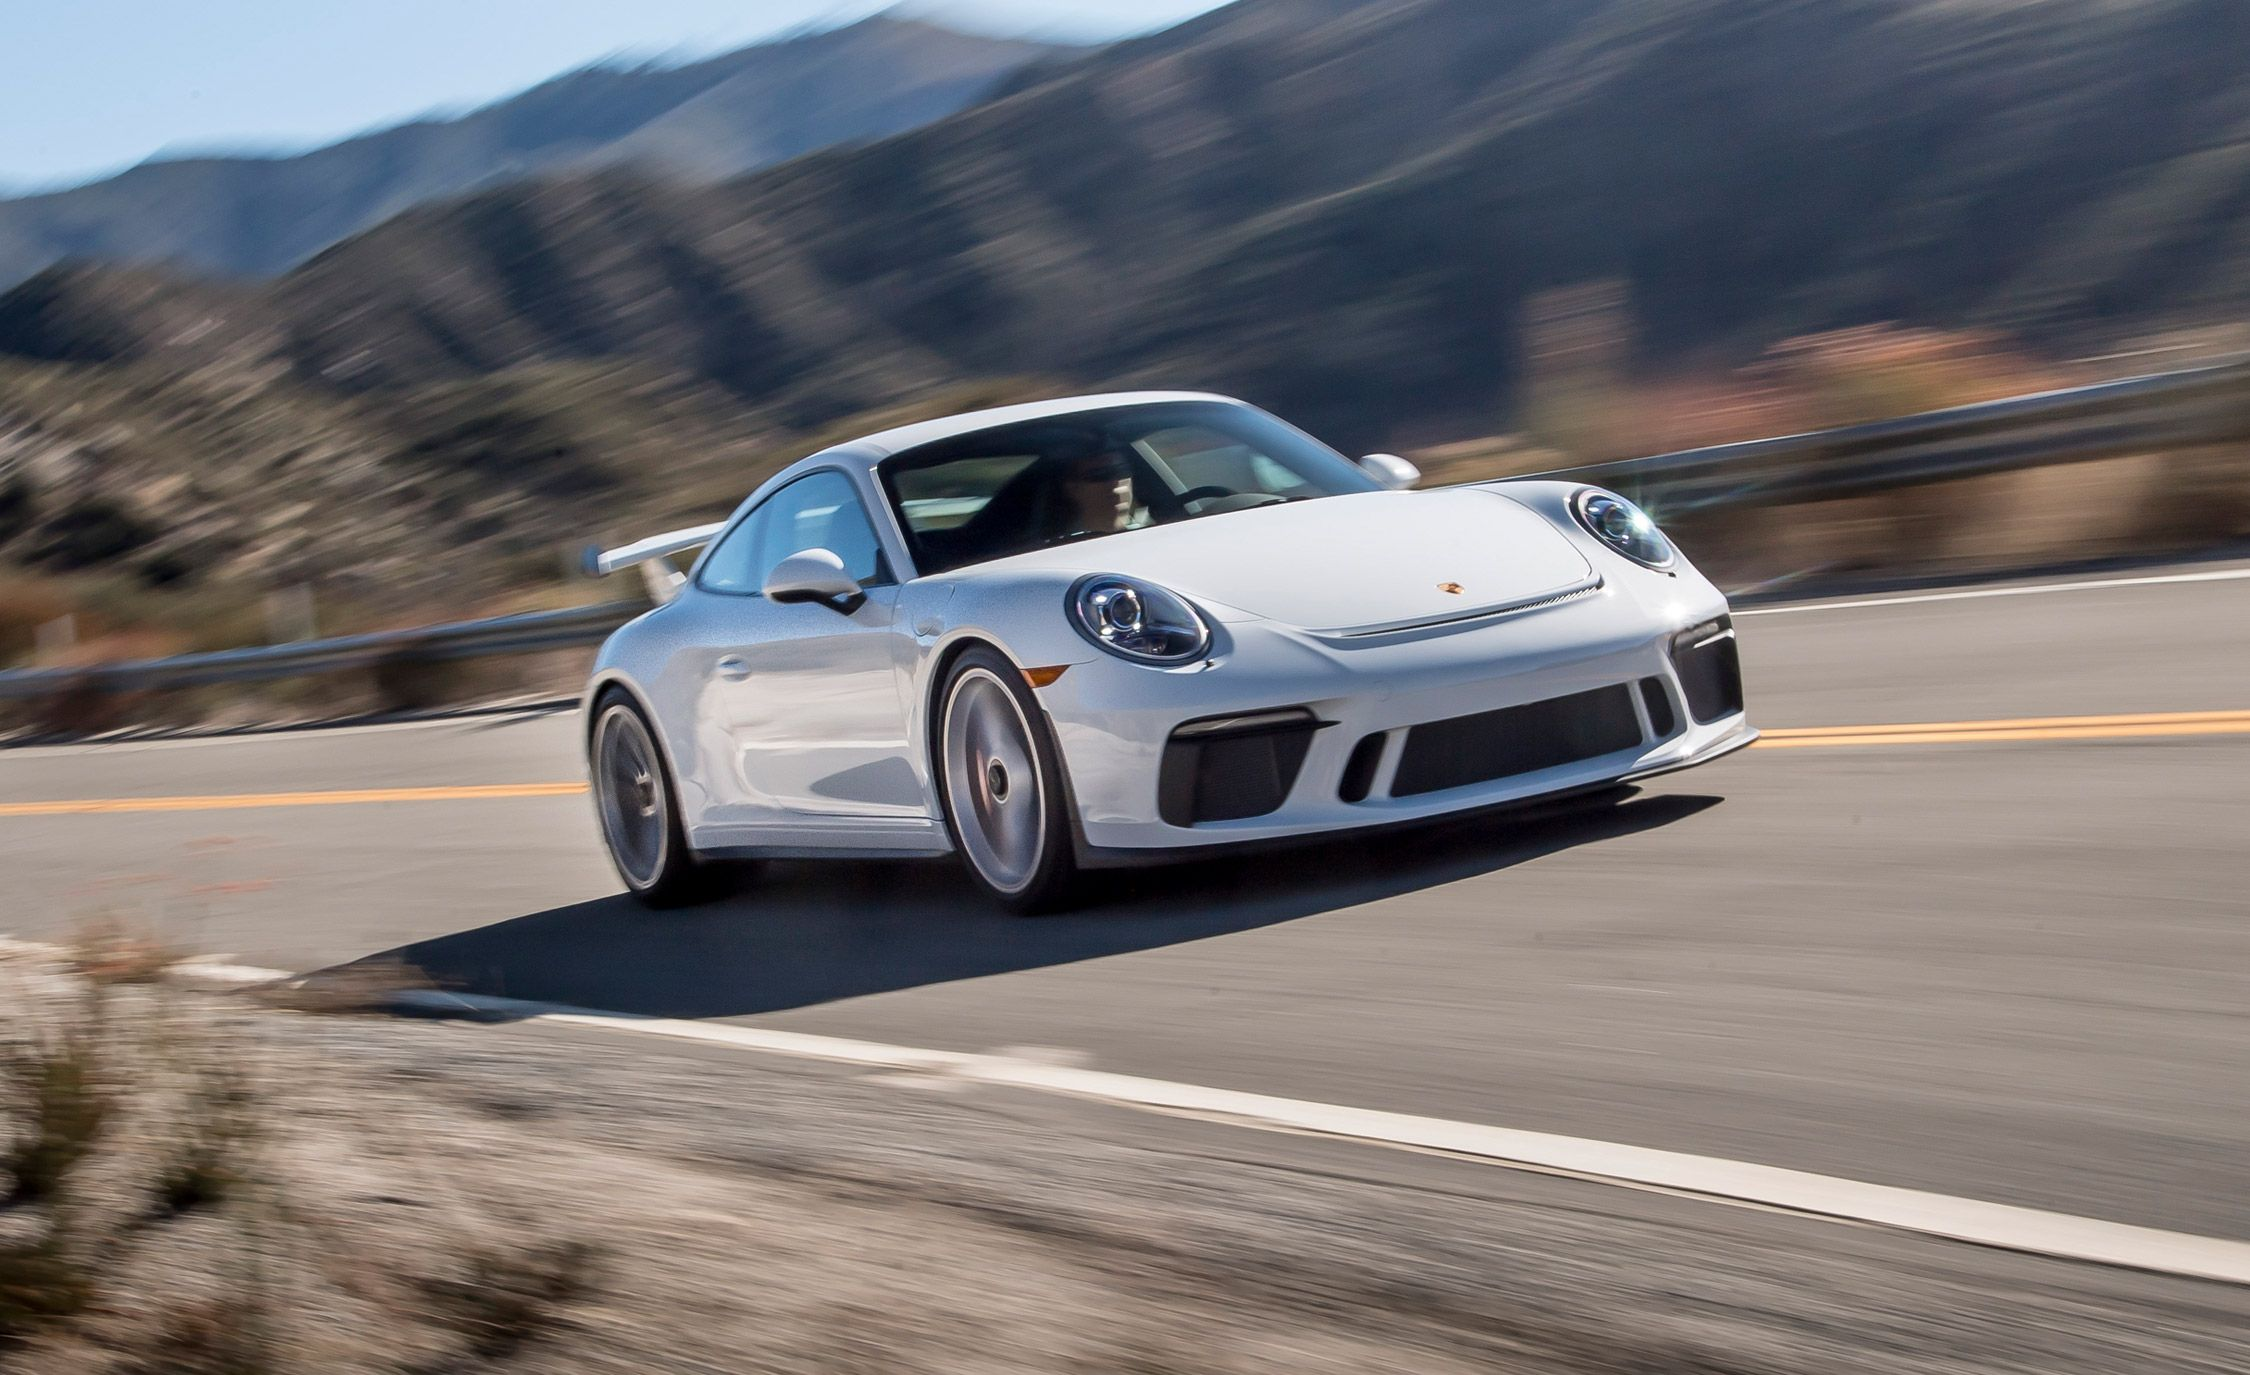 2018 Porsche 911 Gt3 >> 2018 Porsche 911 Gt3 Pdk Automatic Test Review Car And Driver